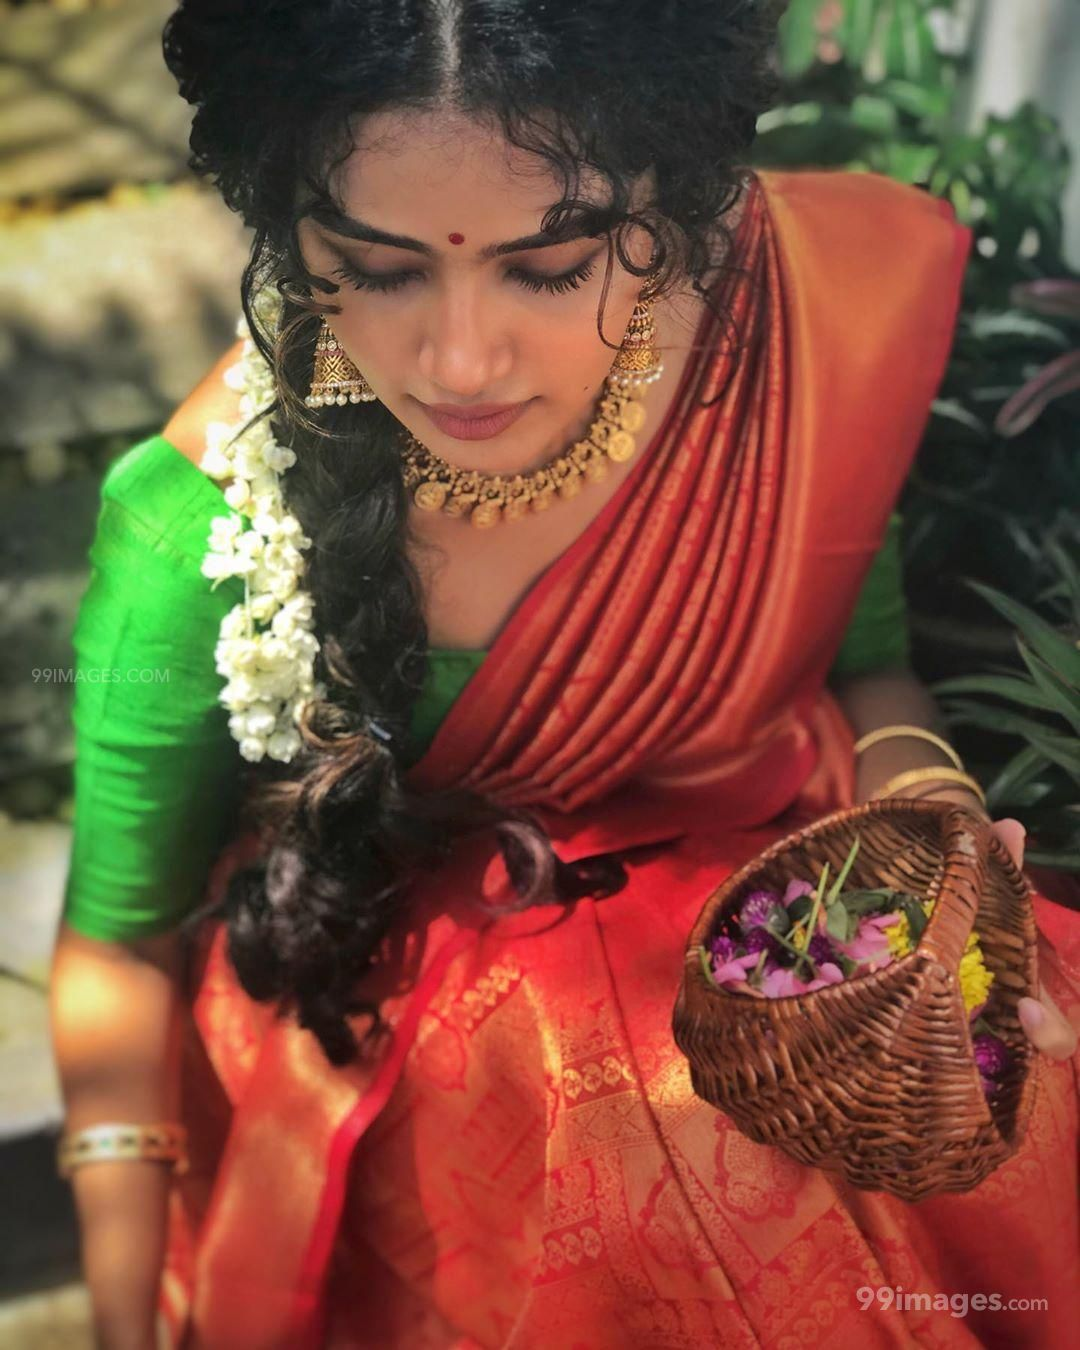 Anupama Parameswaran HD Wallpapers (Desktop Background / Android / iPhone) (1080p, 4k) (197358) - Anupama Parameswaran